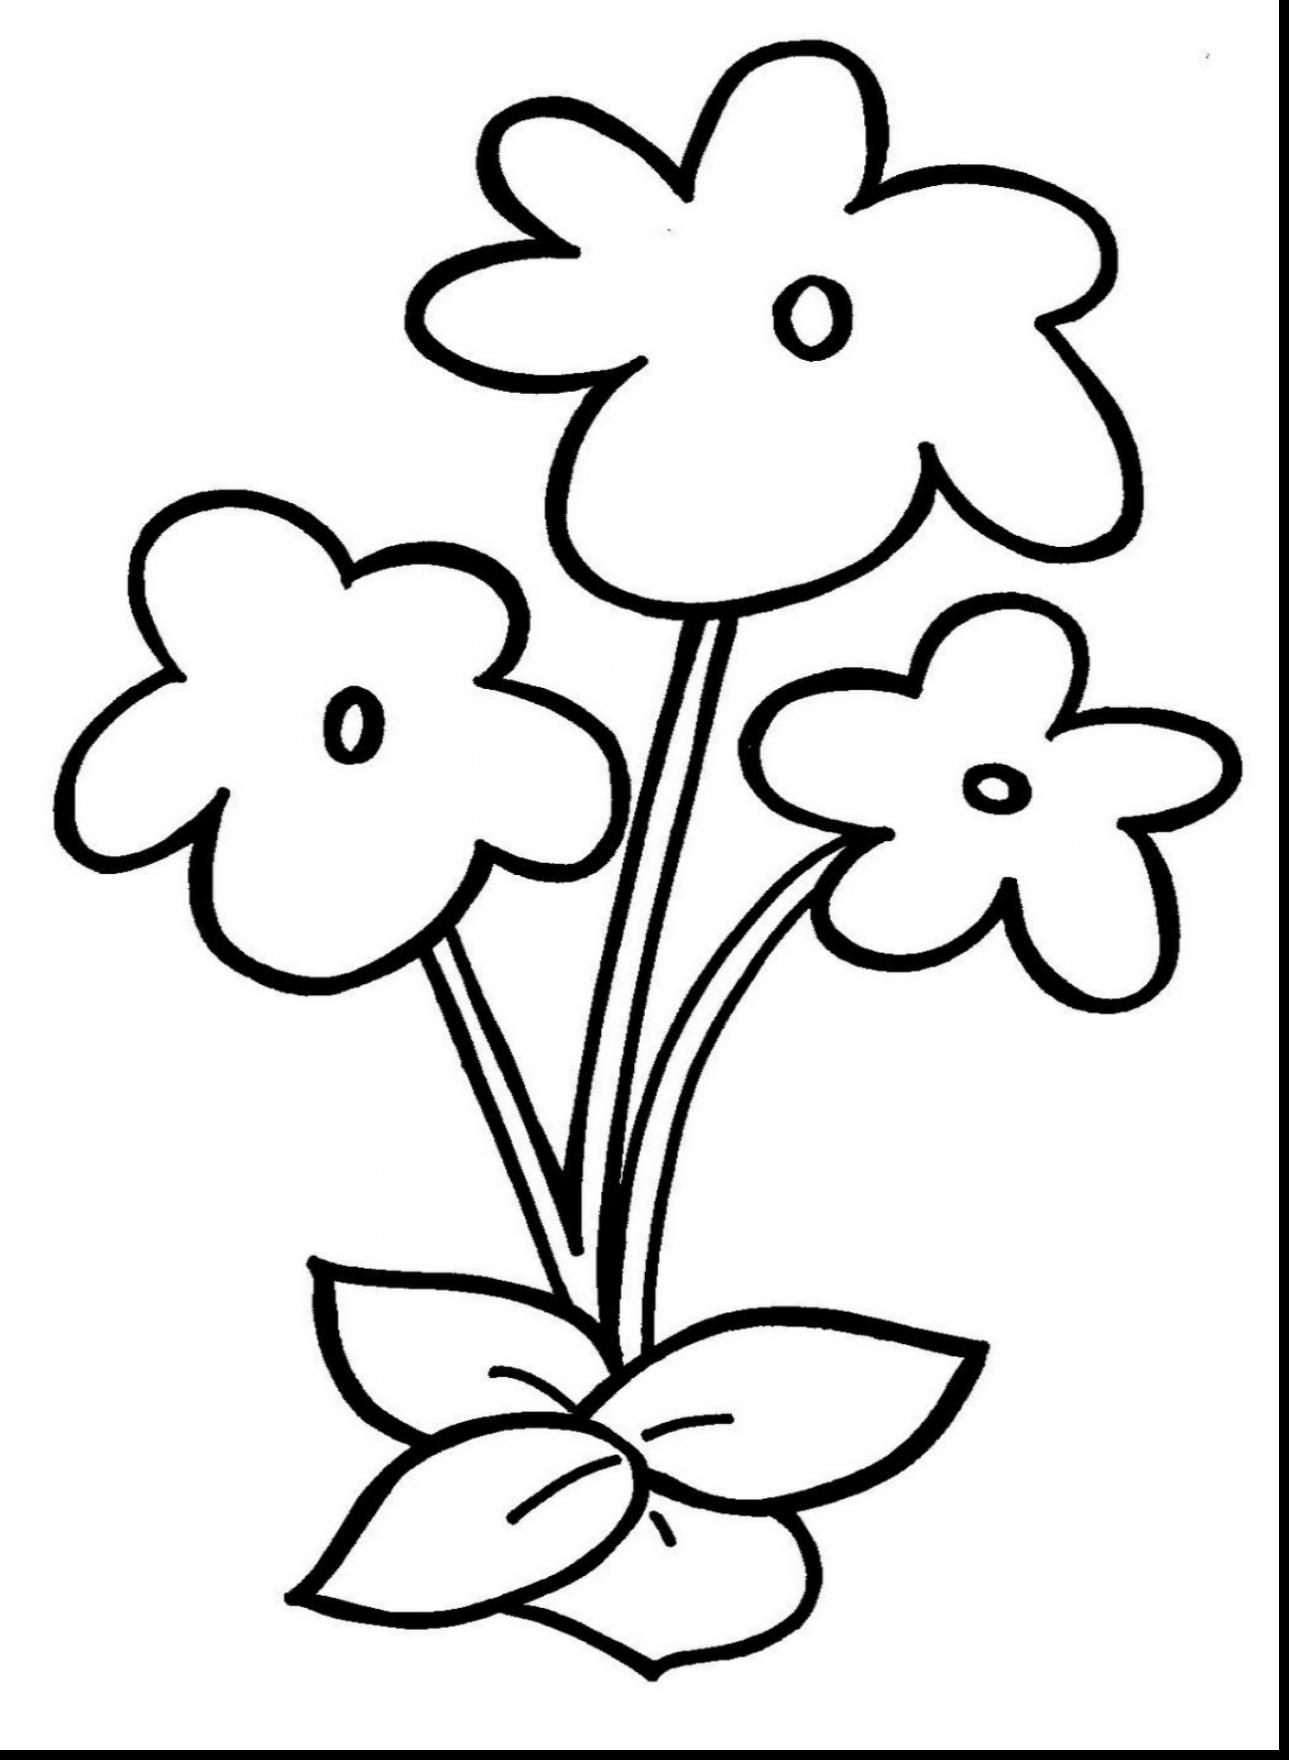 free printable flower coloring pages small flower coloring pages at getcoloringscom free flower free pages printable coloring